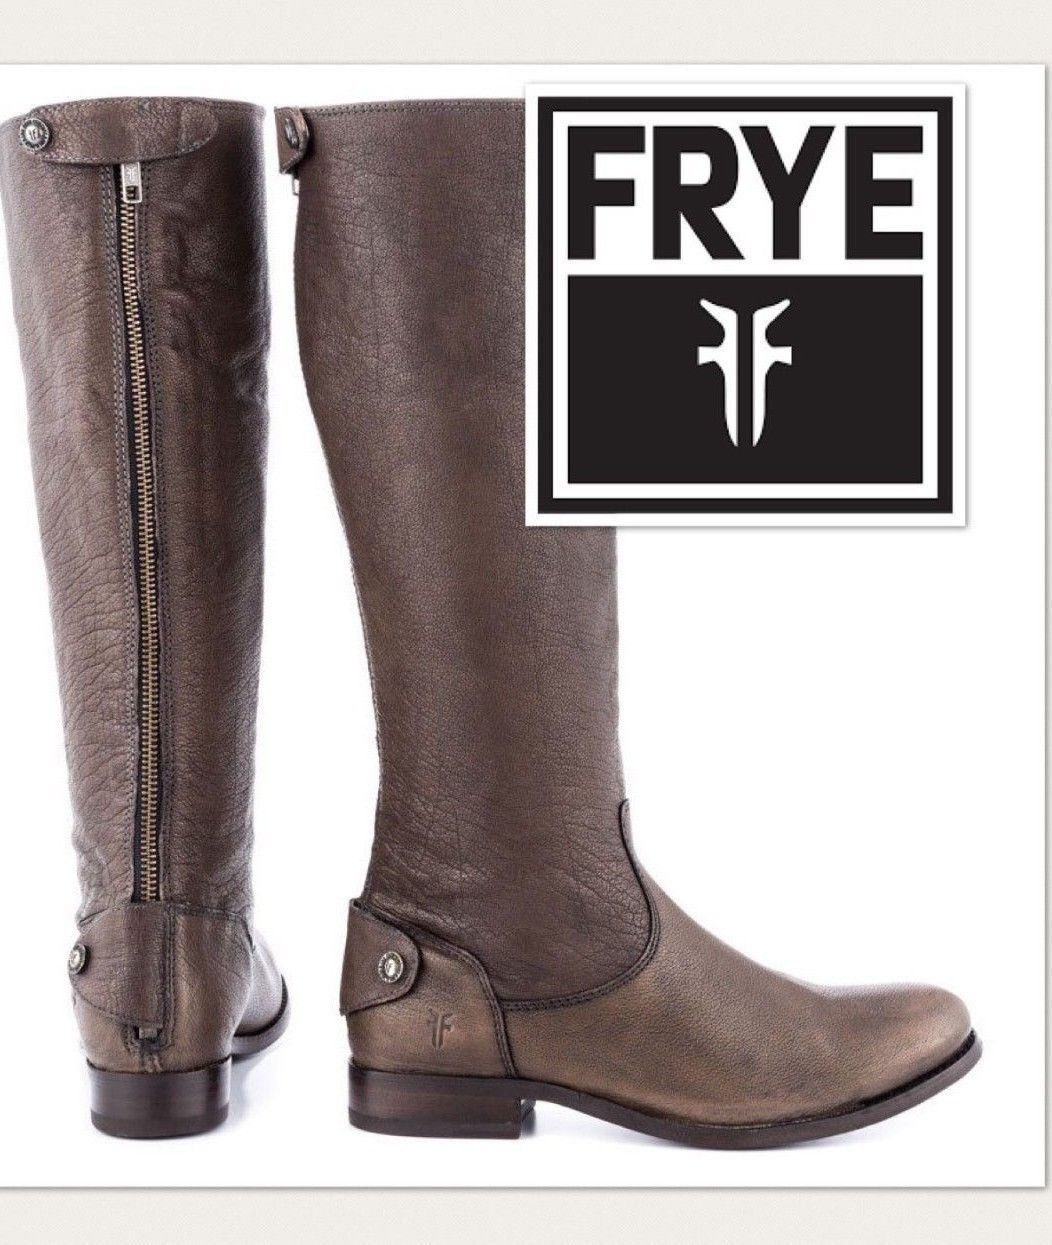 92b225633ff FRYE Riding Boots Melissa Button Back Zip and 50 similar items. 57